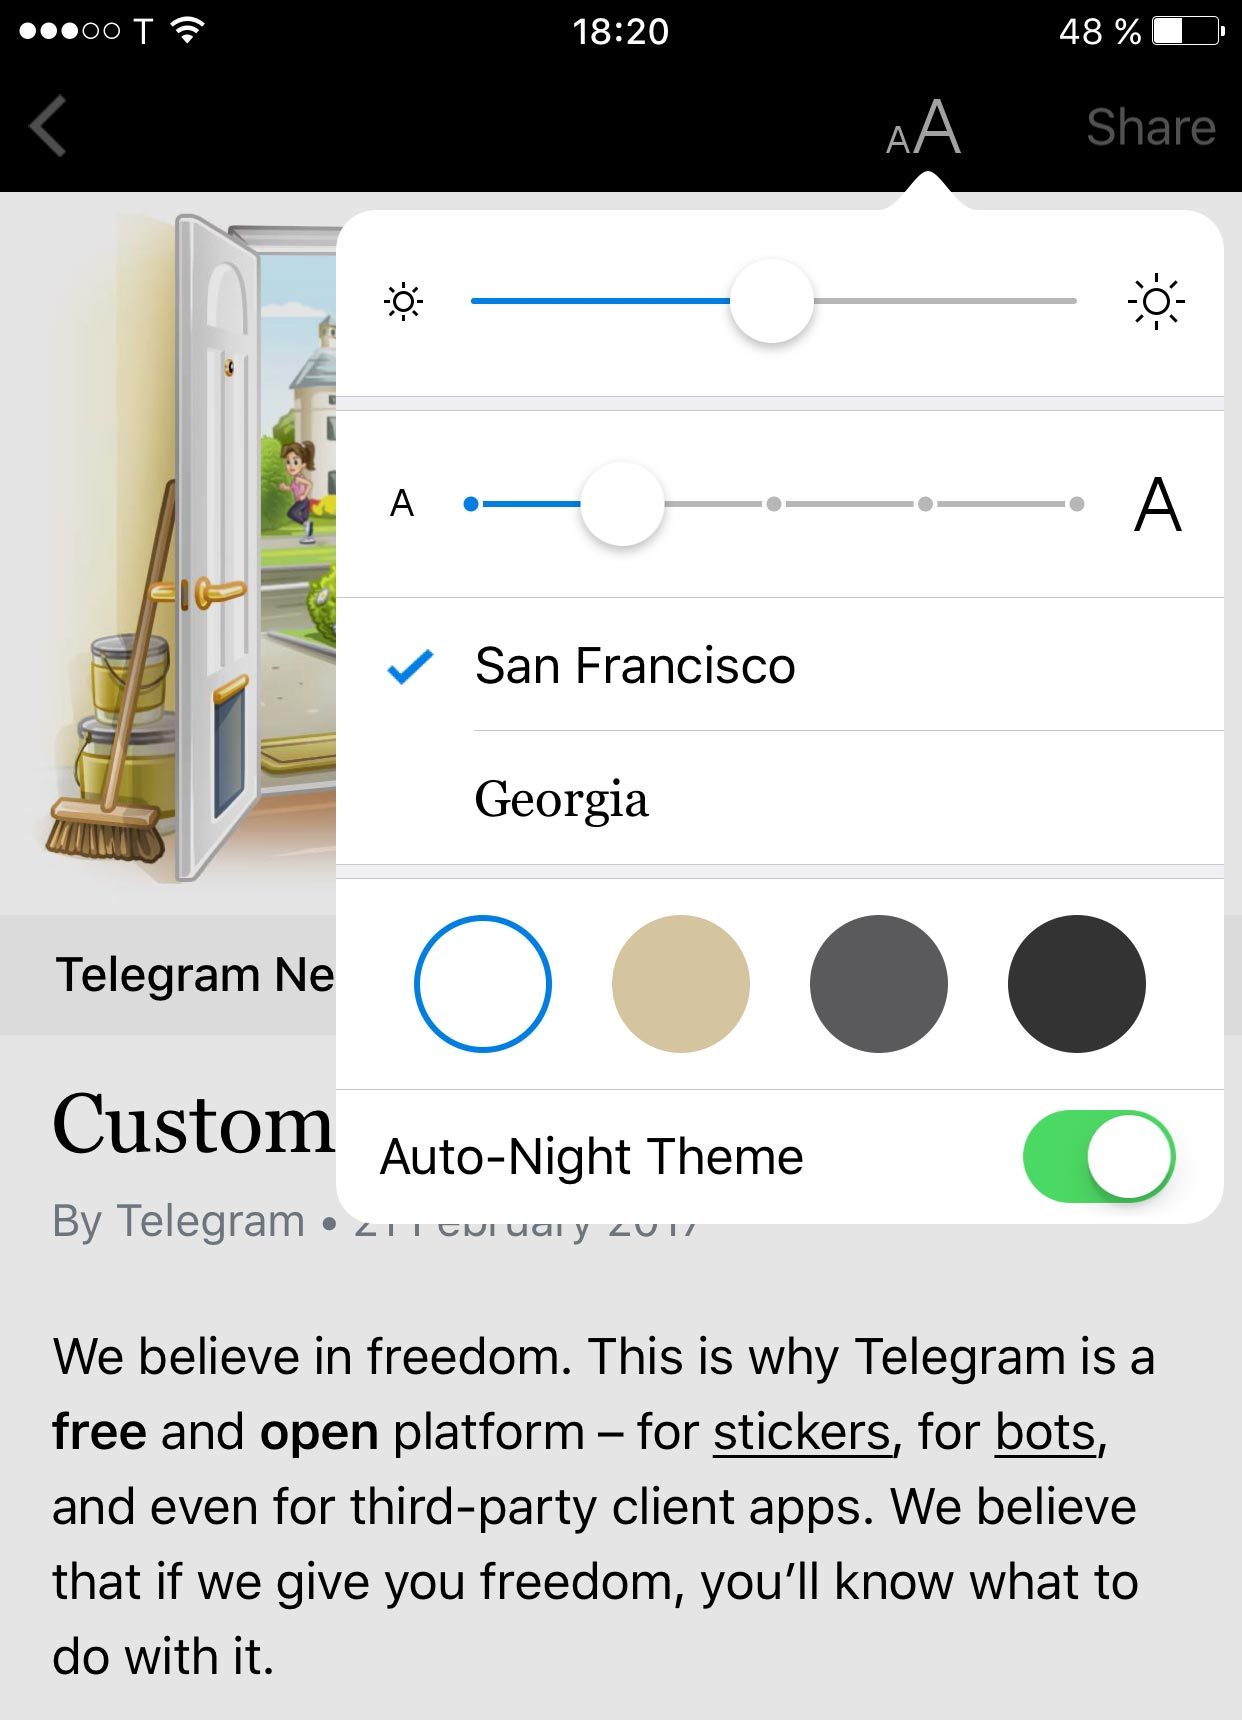 The best: how to create a good telegram channel